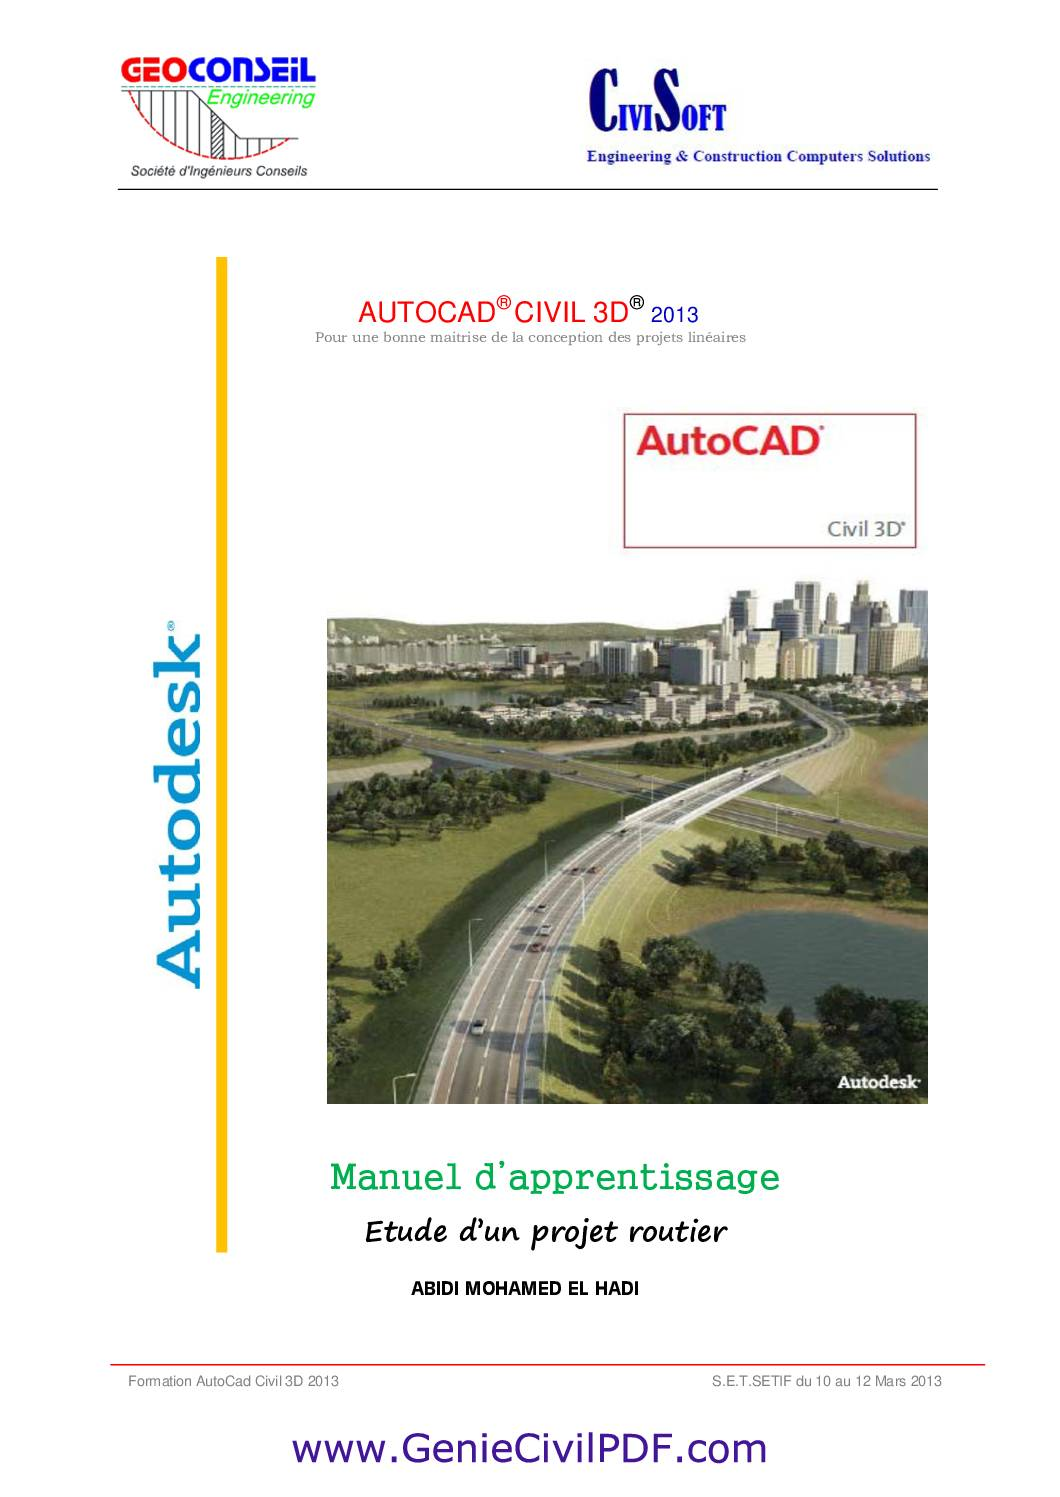 Manuel d'apprentissage Autocad Civil 3D